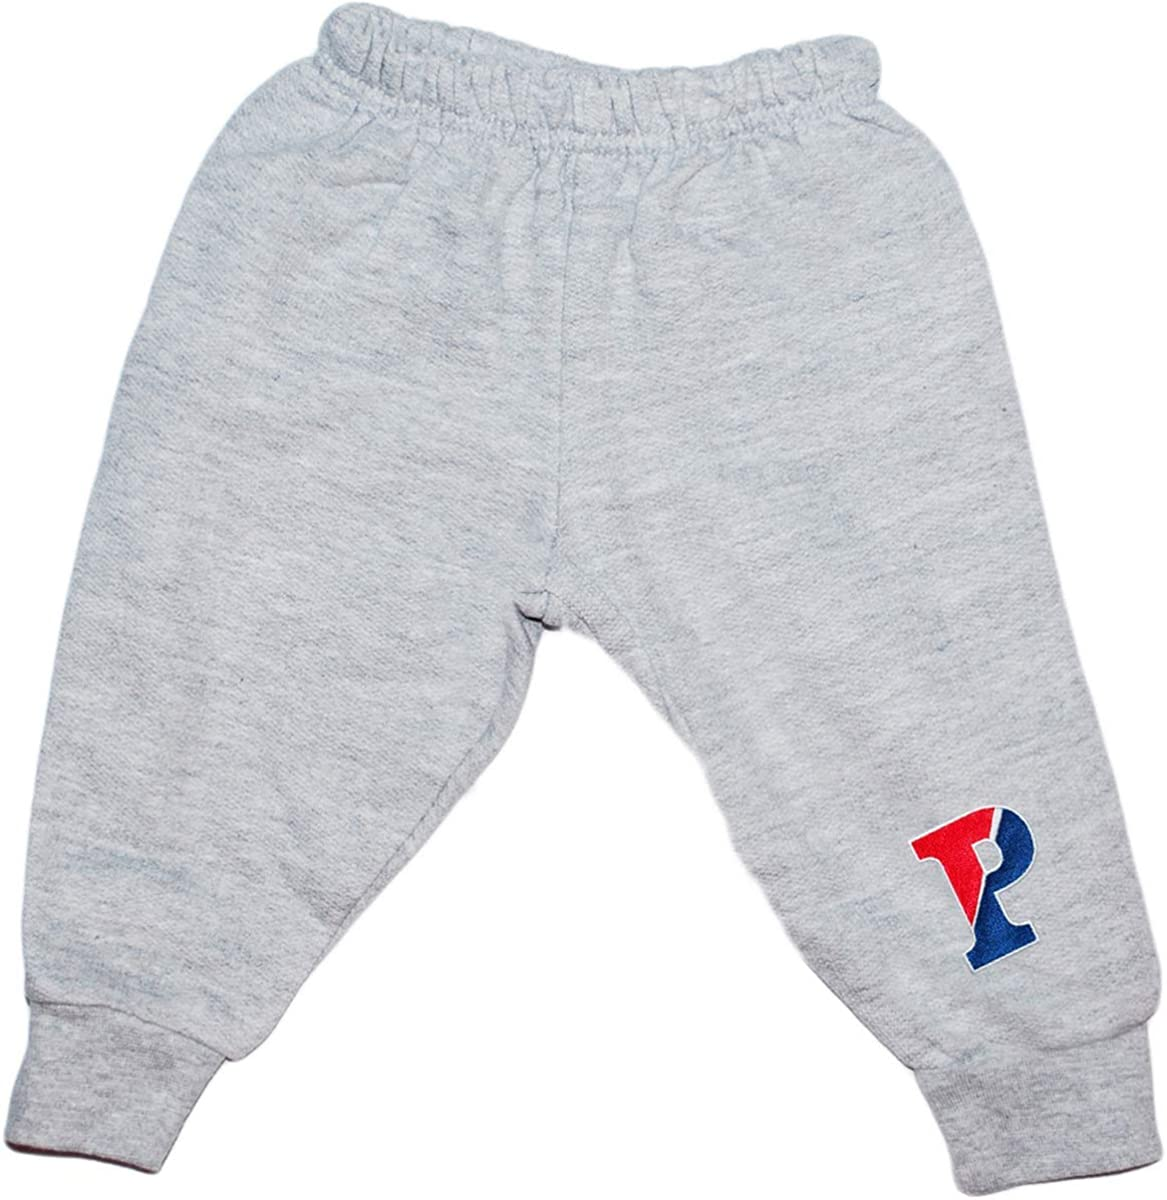 Creative Knitwear University of Pennsylvania Baby and Toddler Sweat Pants